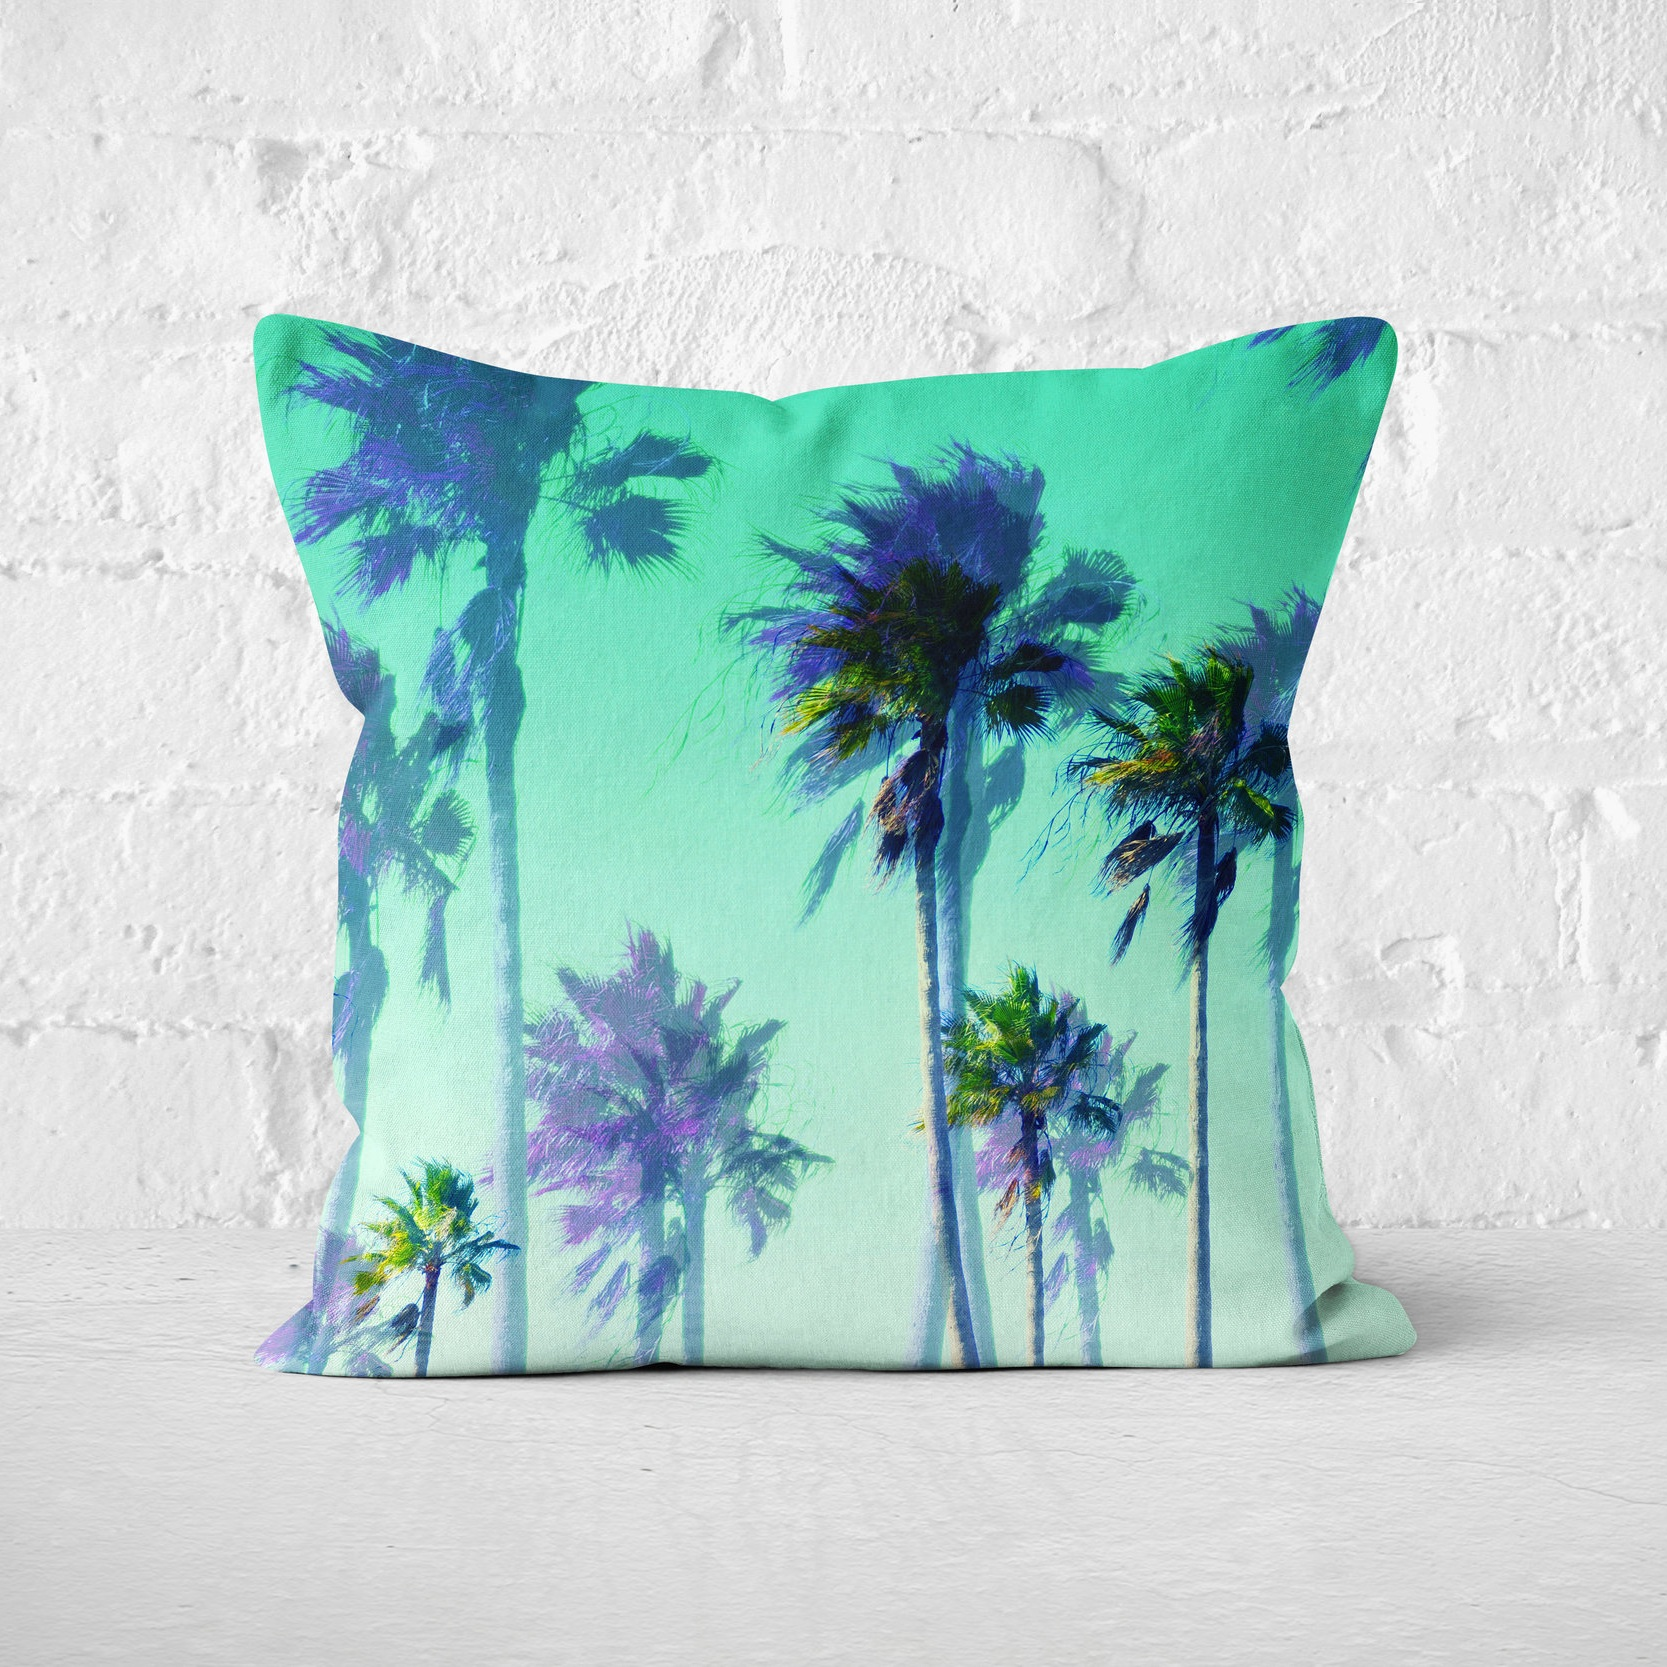 Jungle Green Palms - Square Pillow White Brick Background.jpg